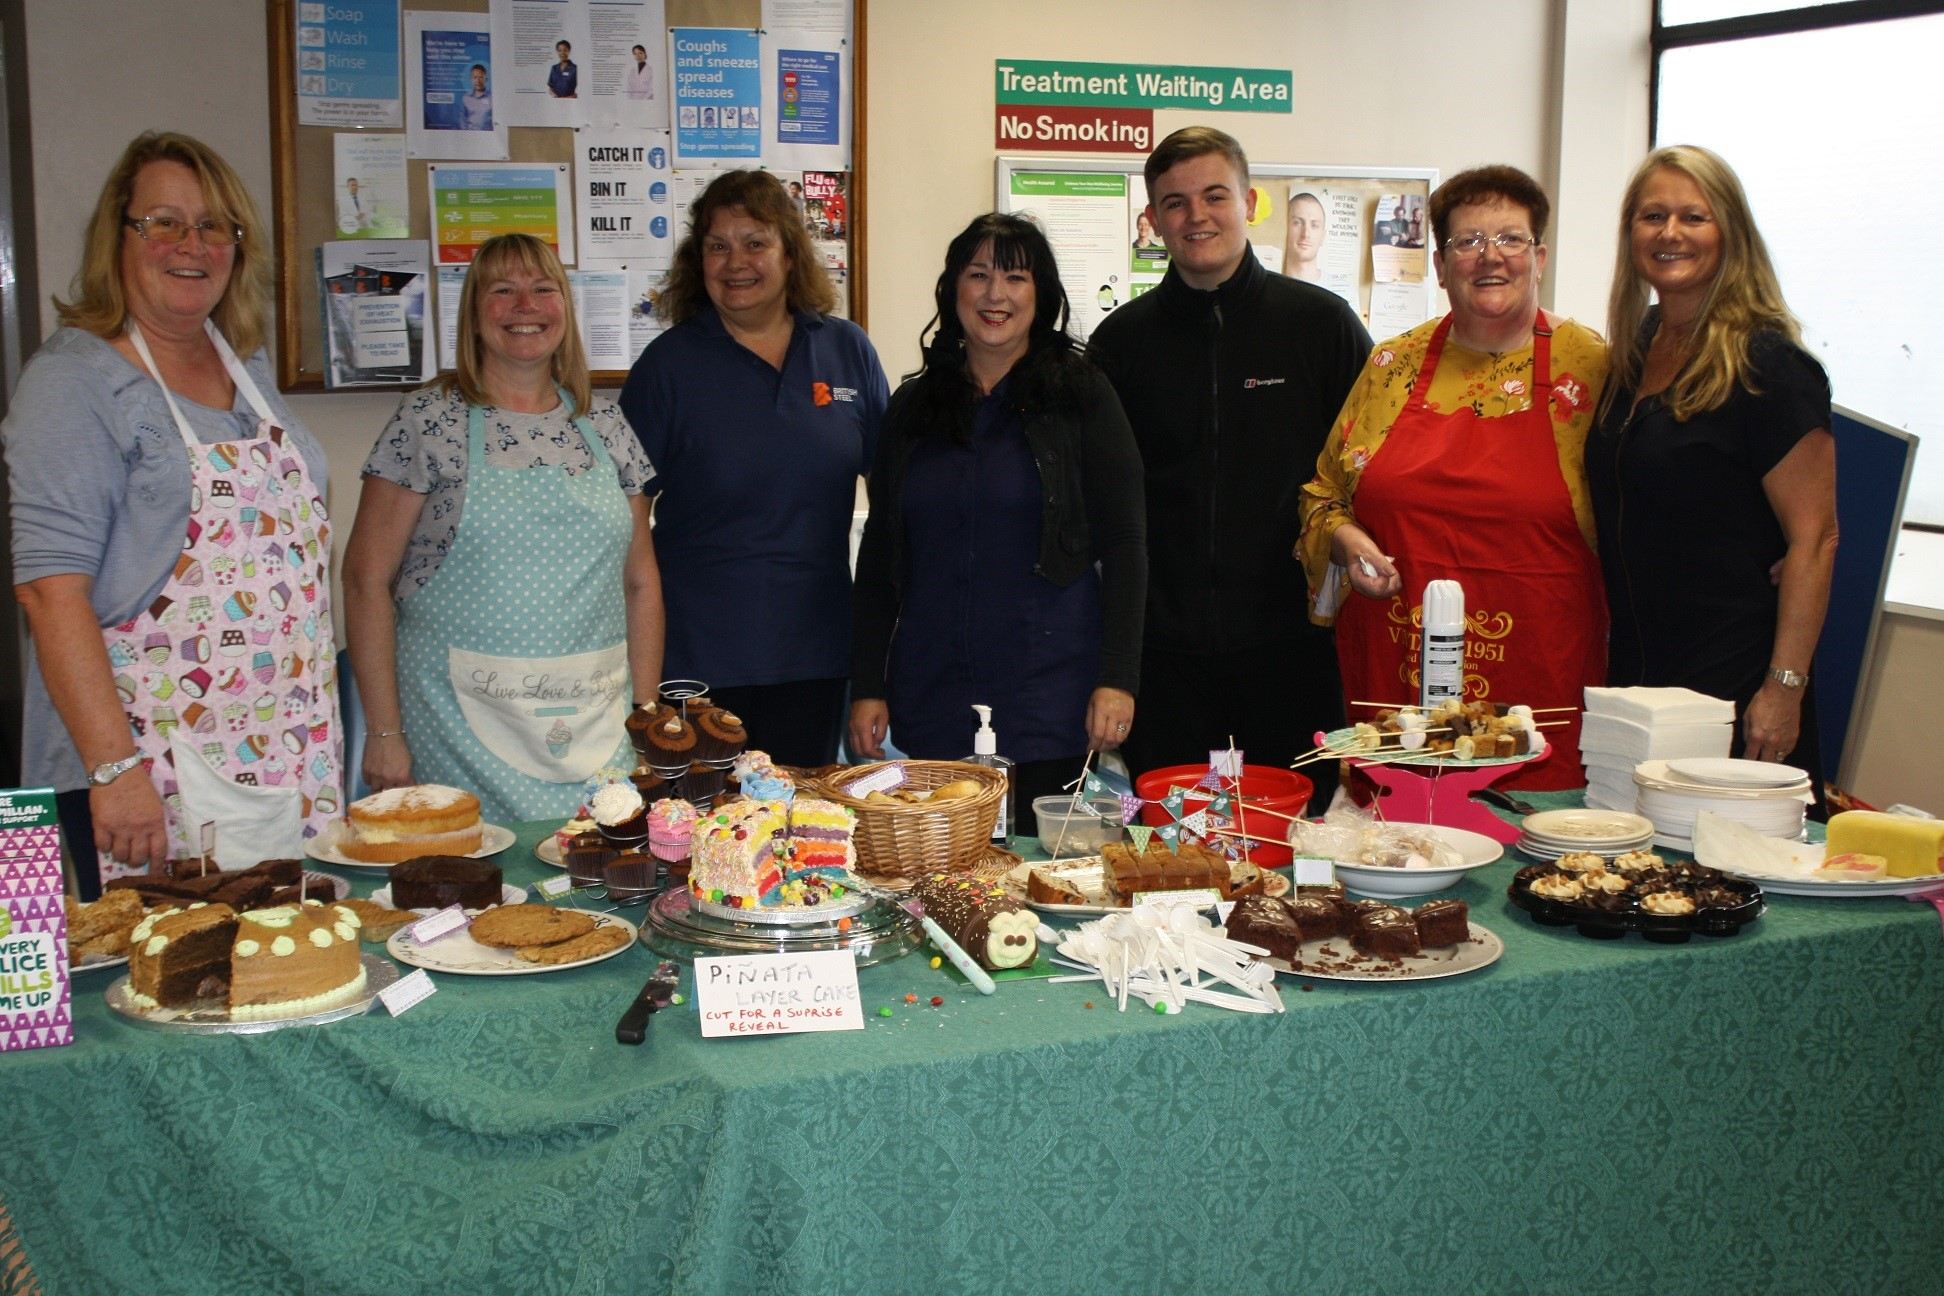 Some of the cakes on offer at British Steel's Macmillan Coffee Mornings.